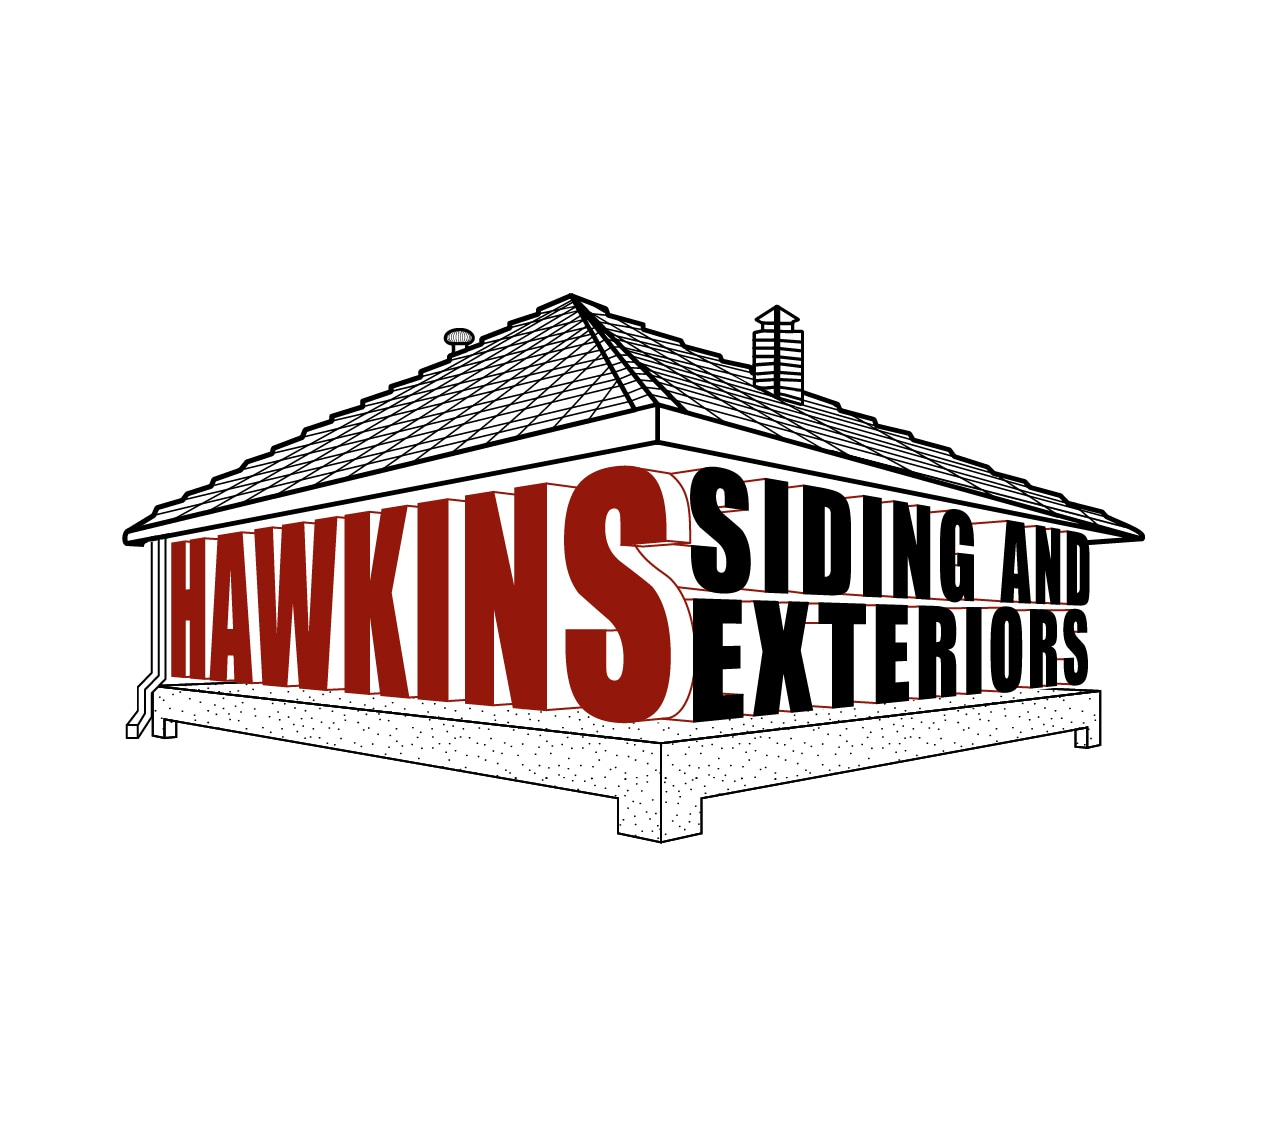 Hawkins Siding and Exteriors